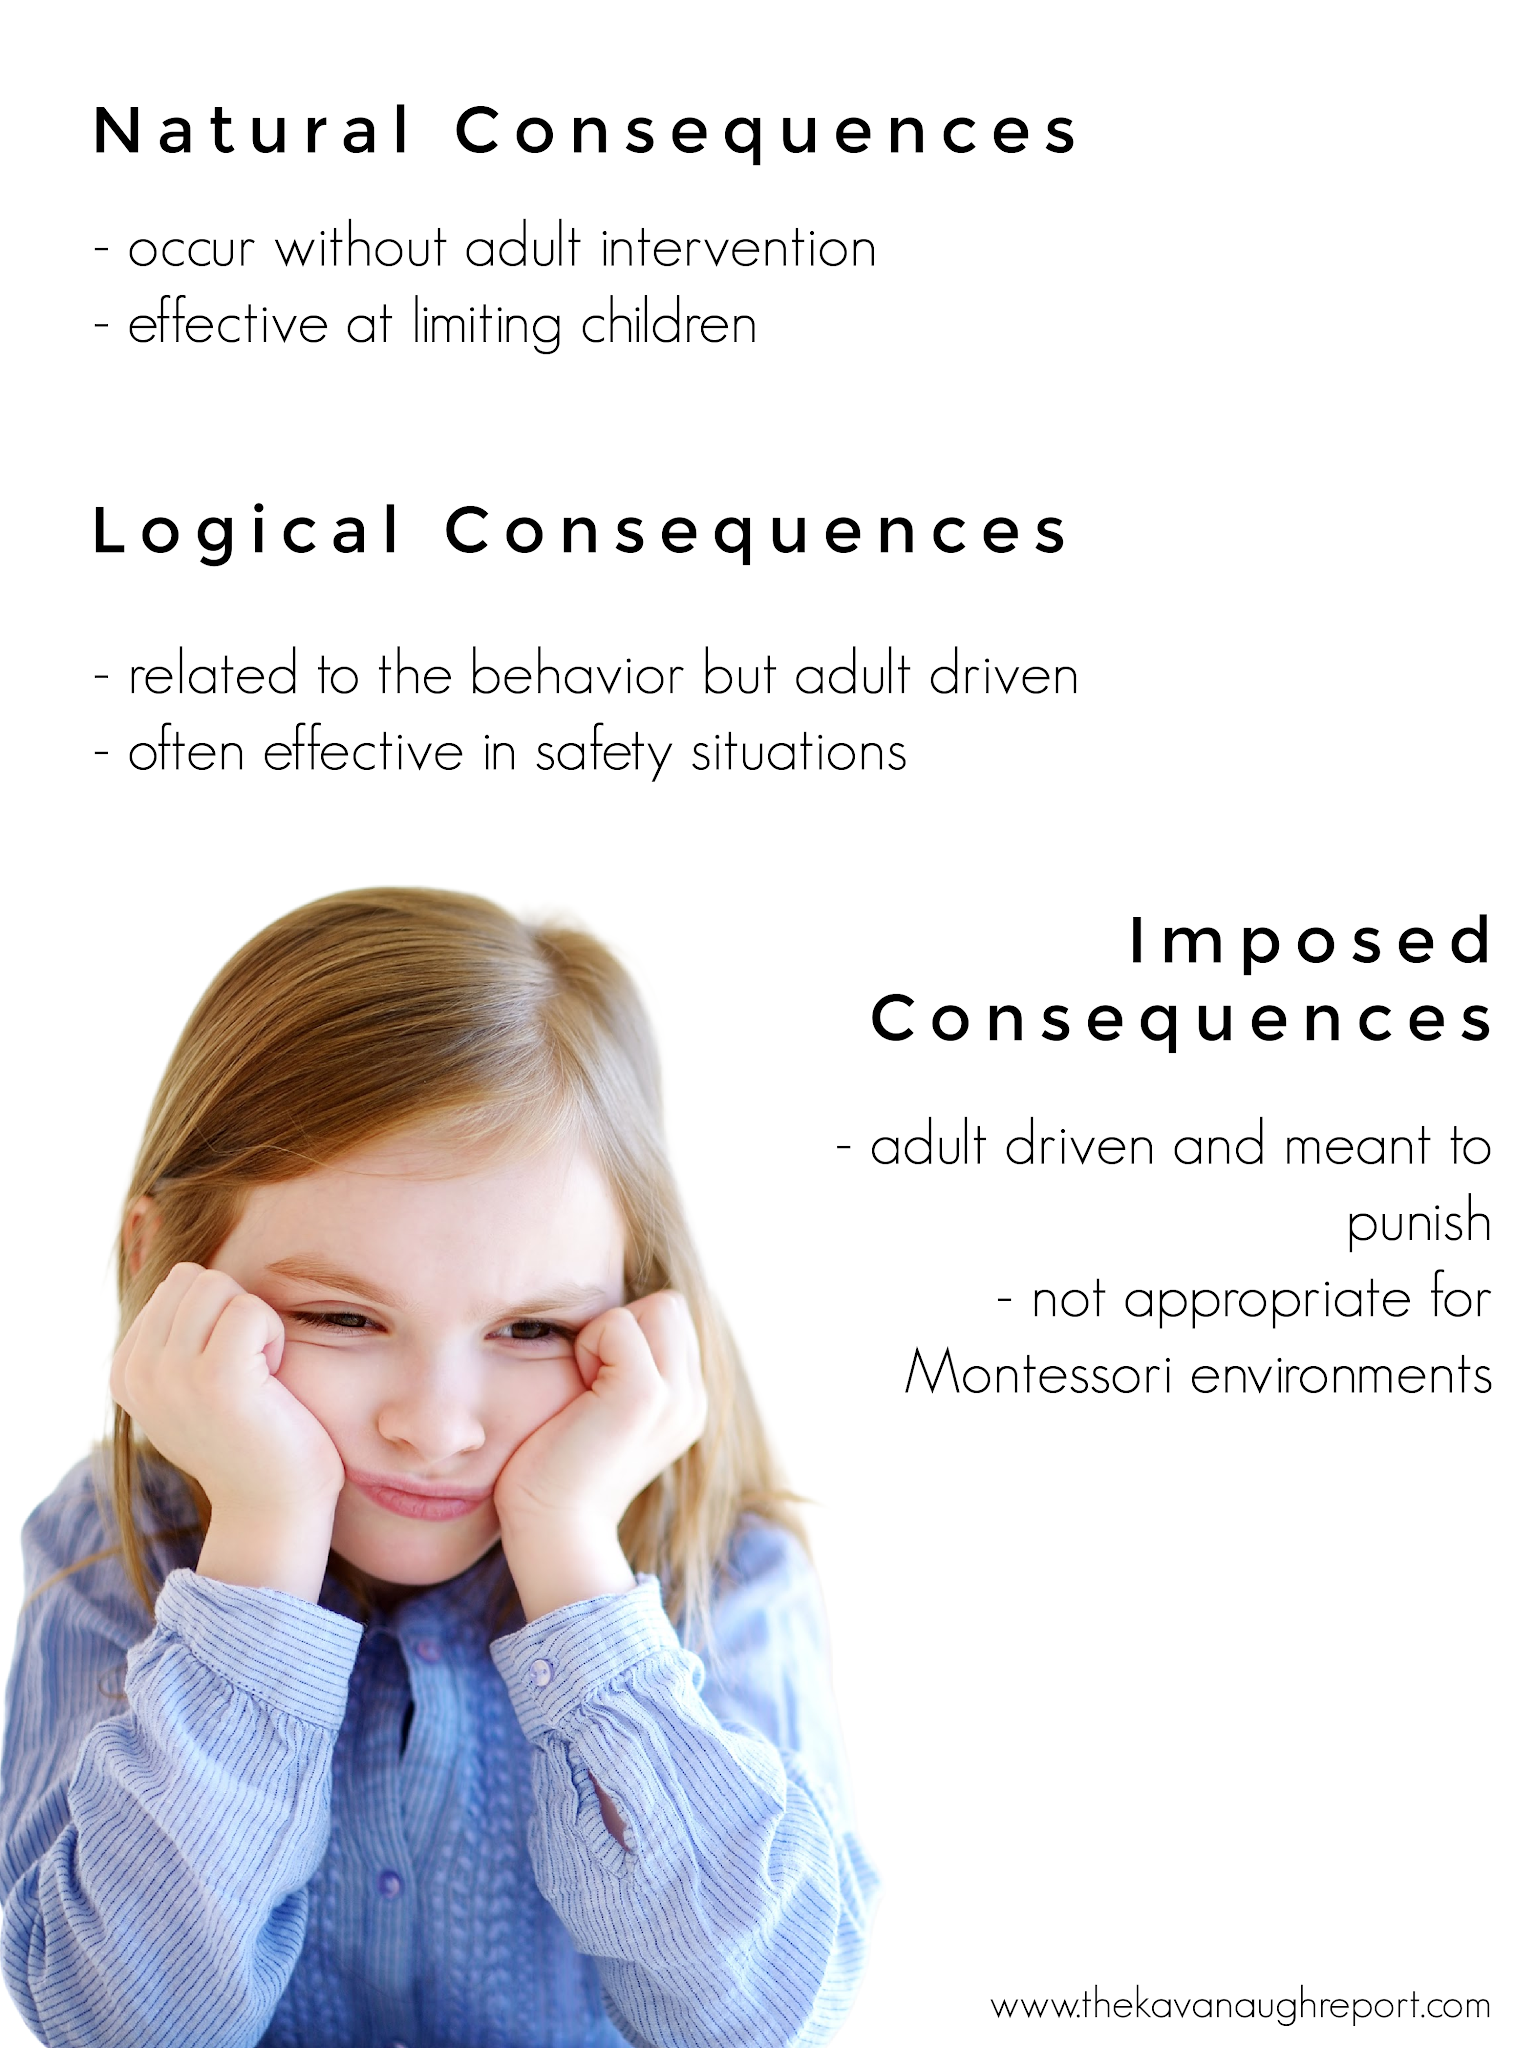 Montessori parenting takes a different approach to discipline. Here's a look at types of consequences and how they might be used in a Montessori home.